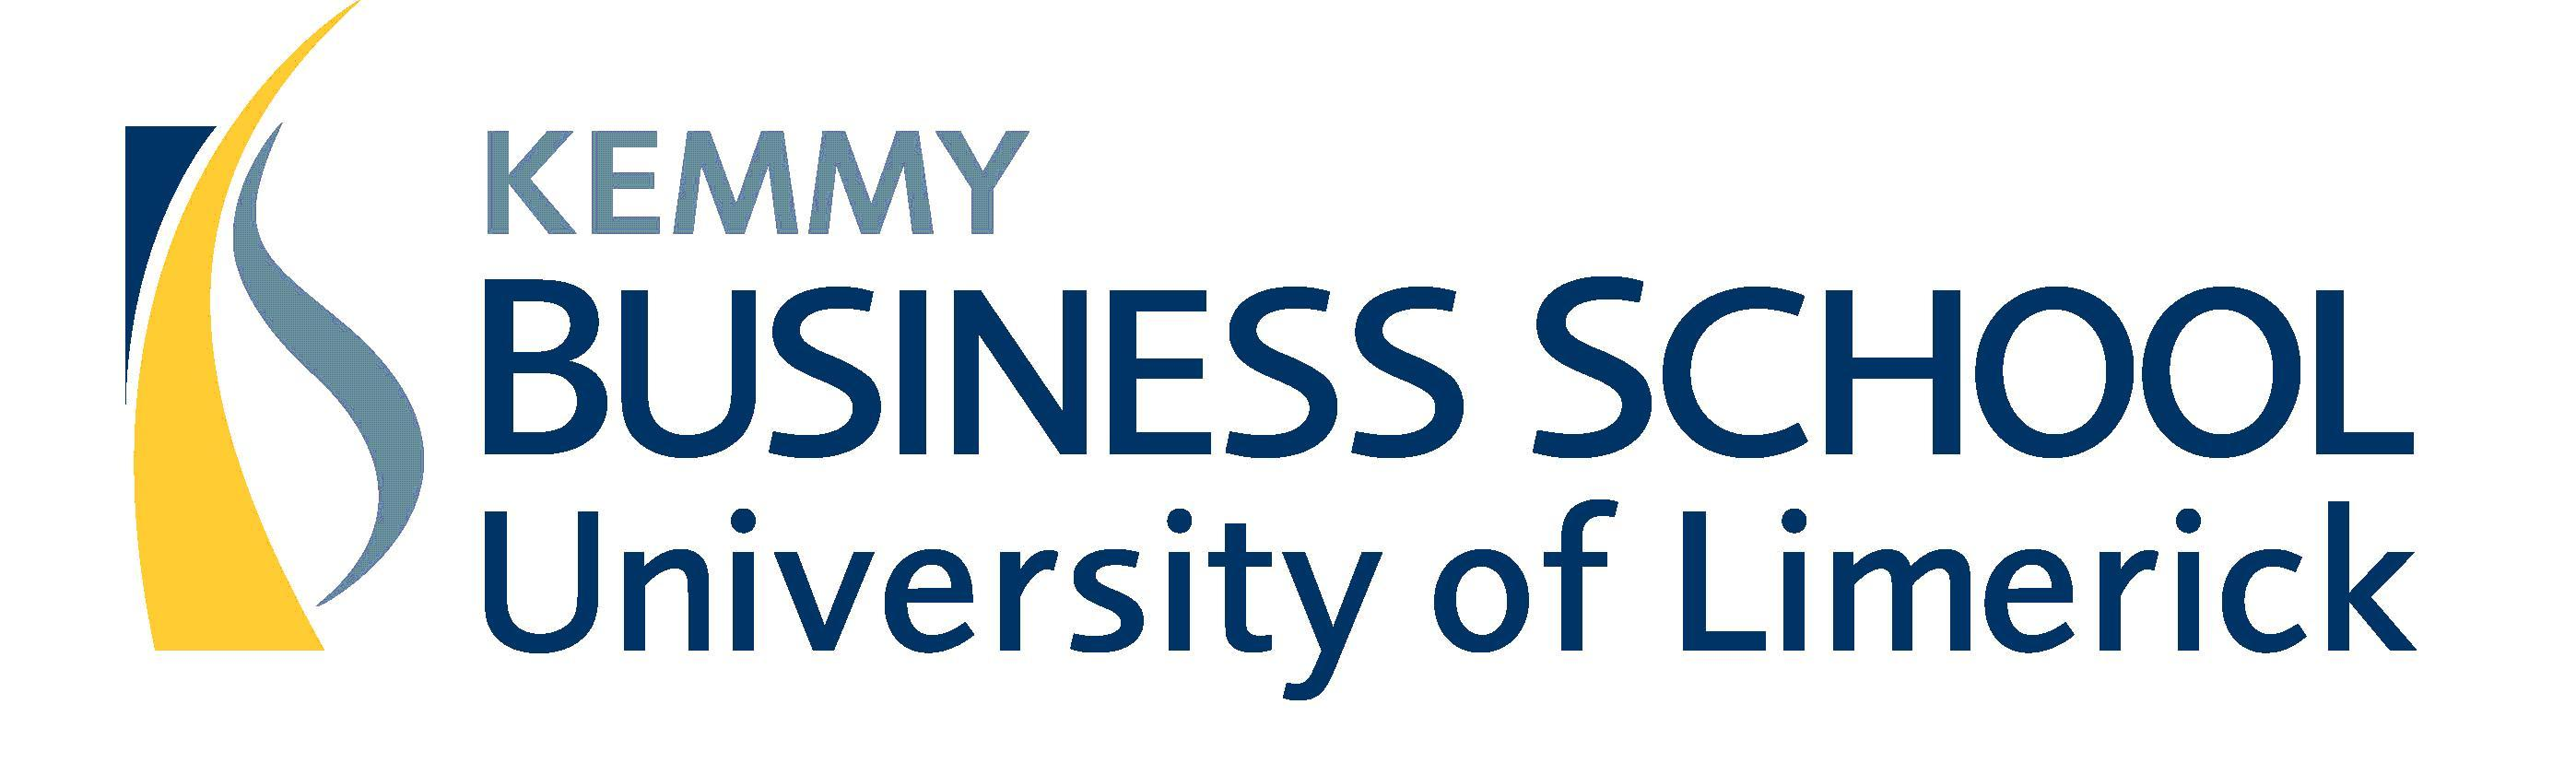 Logo University of Limerick - Kemmy Business School